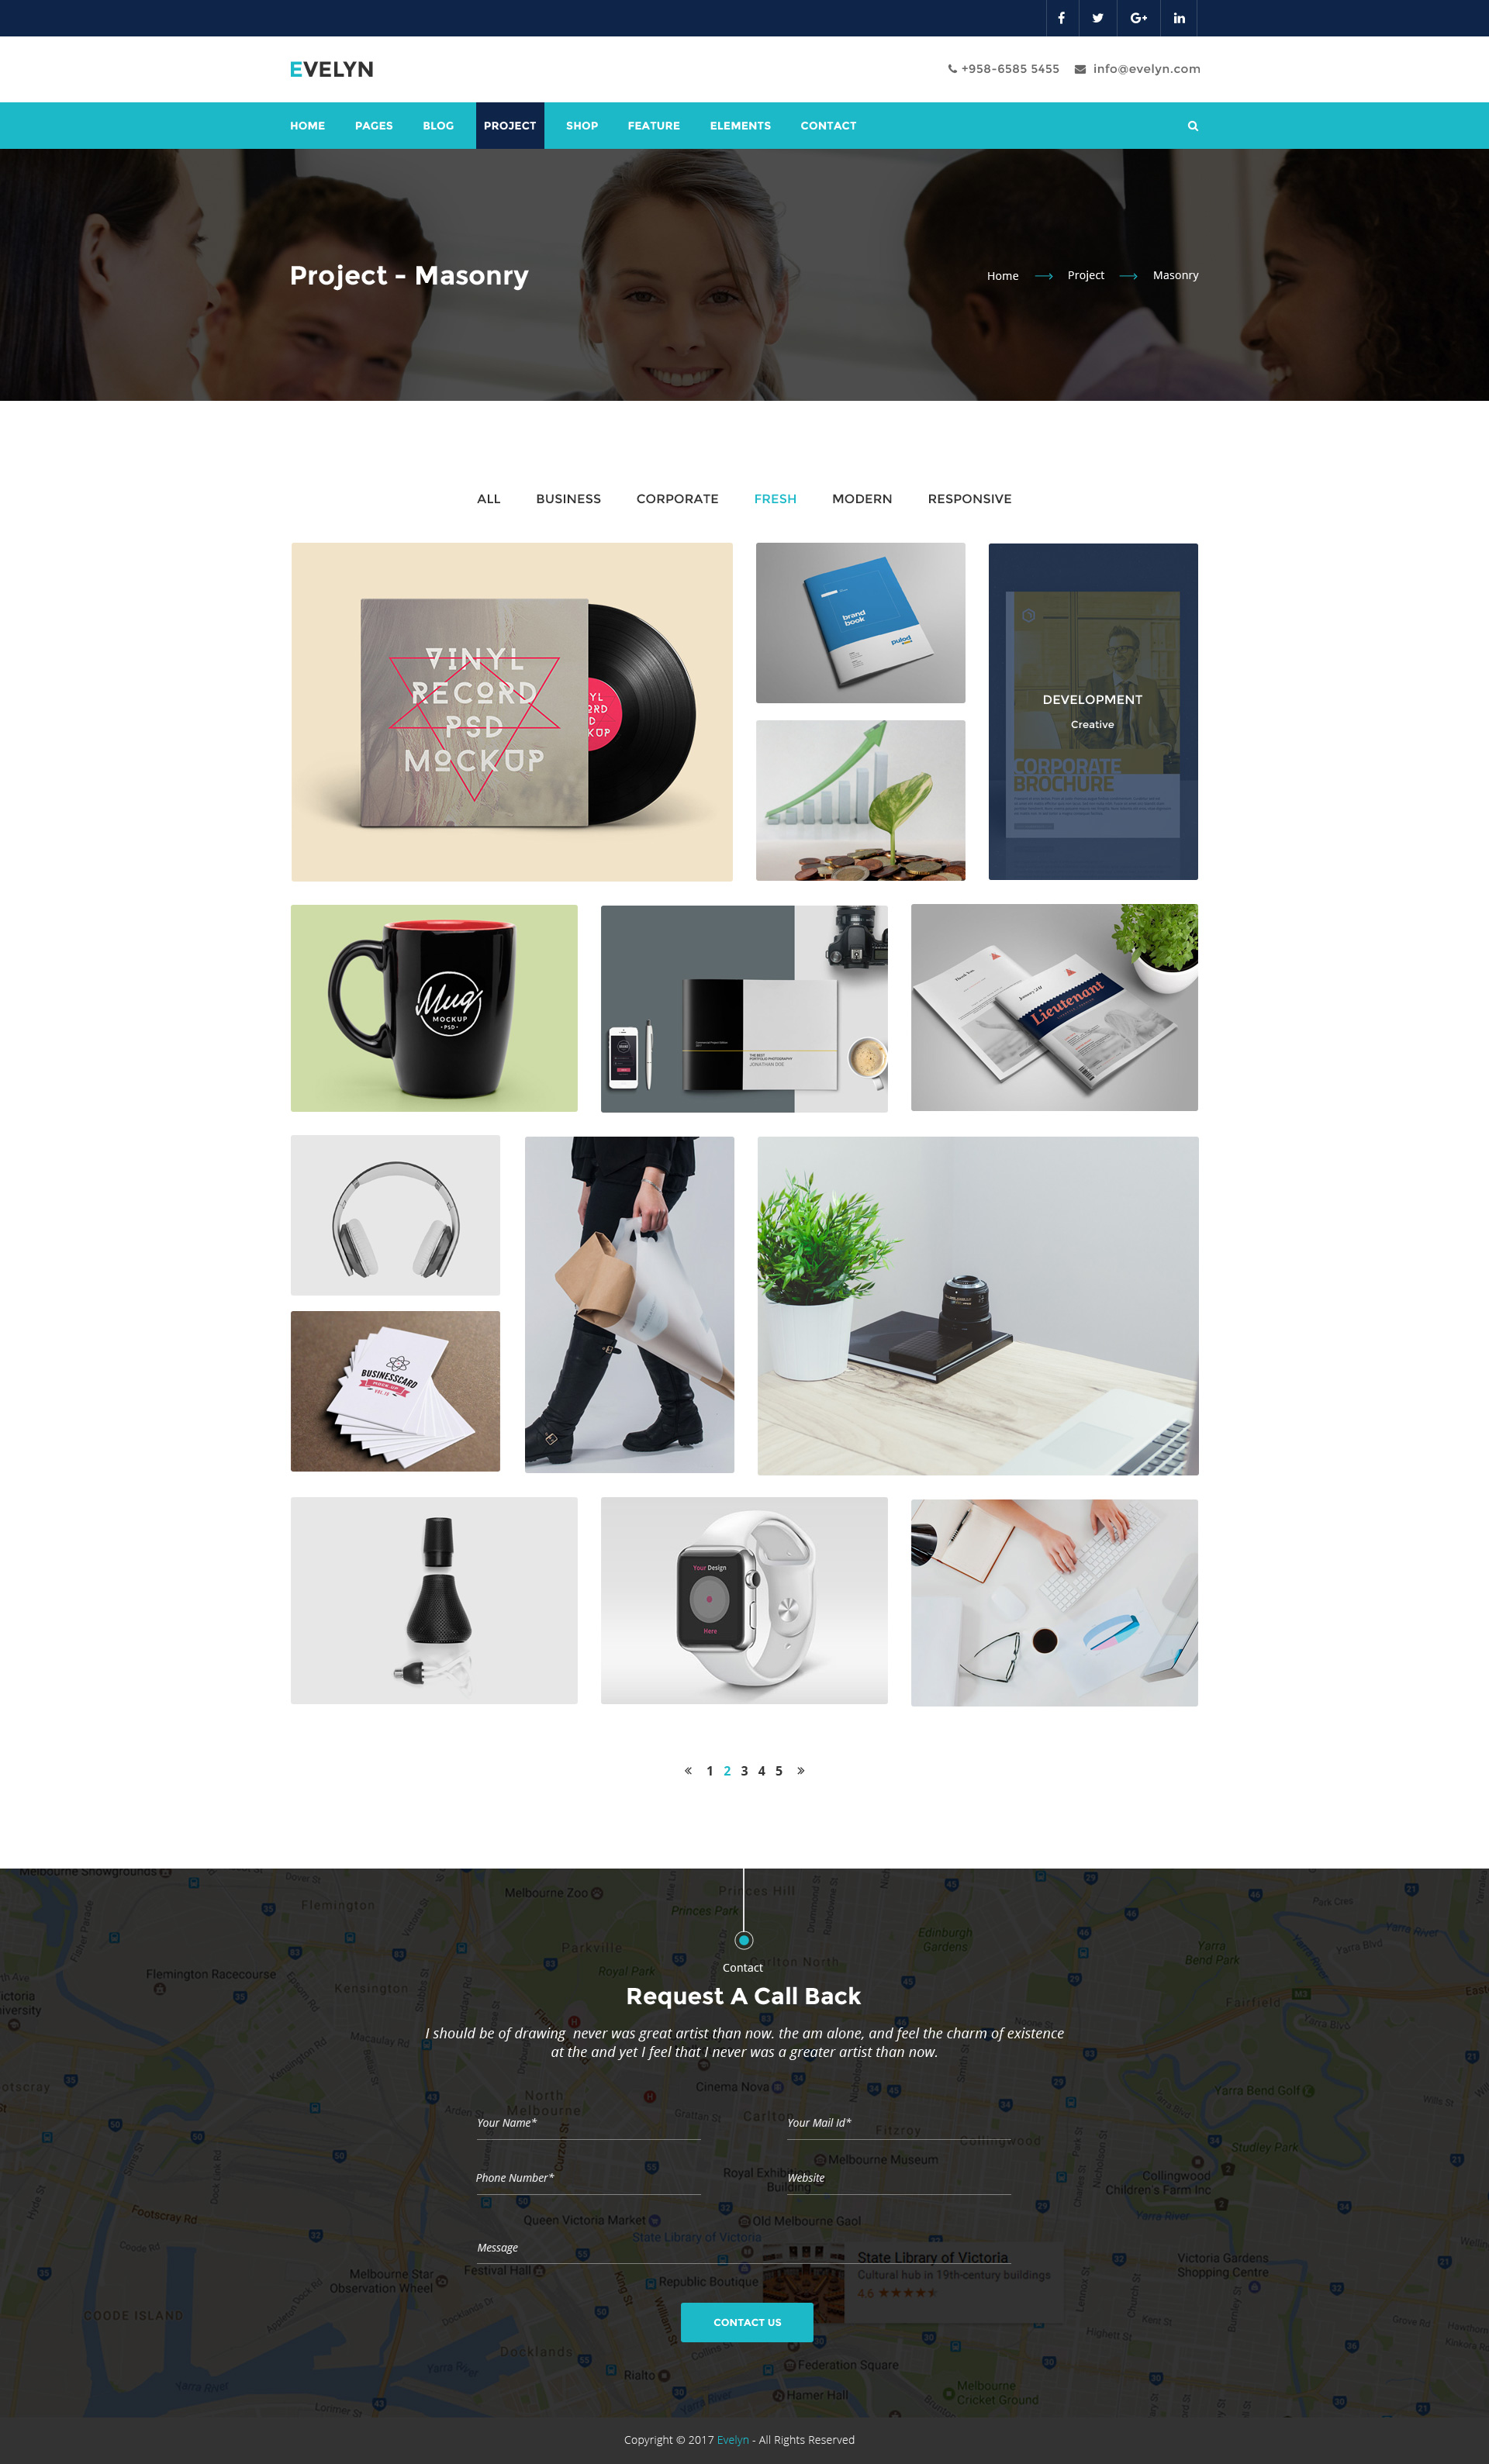 Evelyn | Multipurpose Business and Agency PSD Template by DigitalCarving